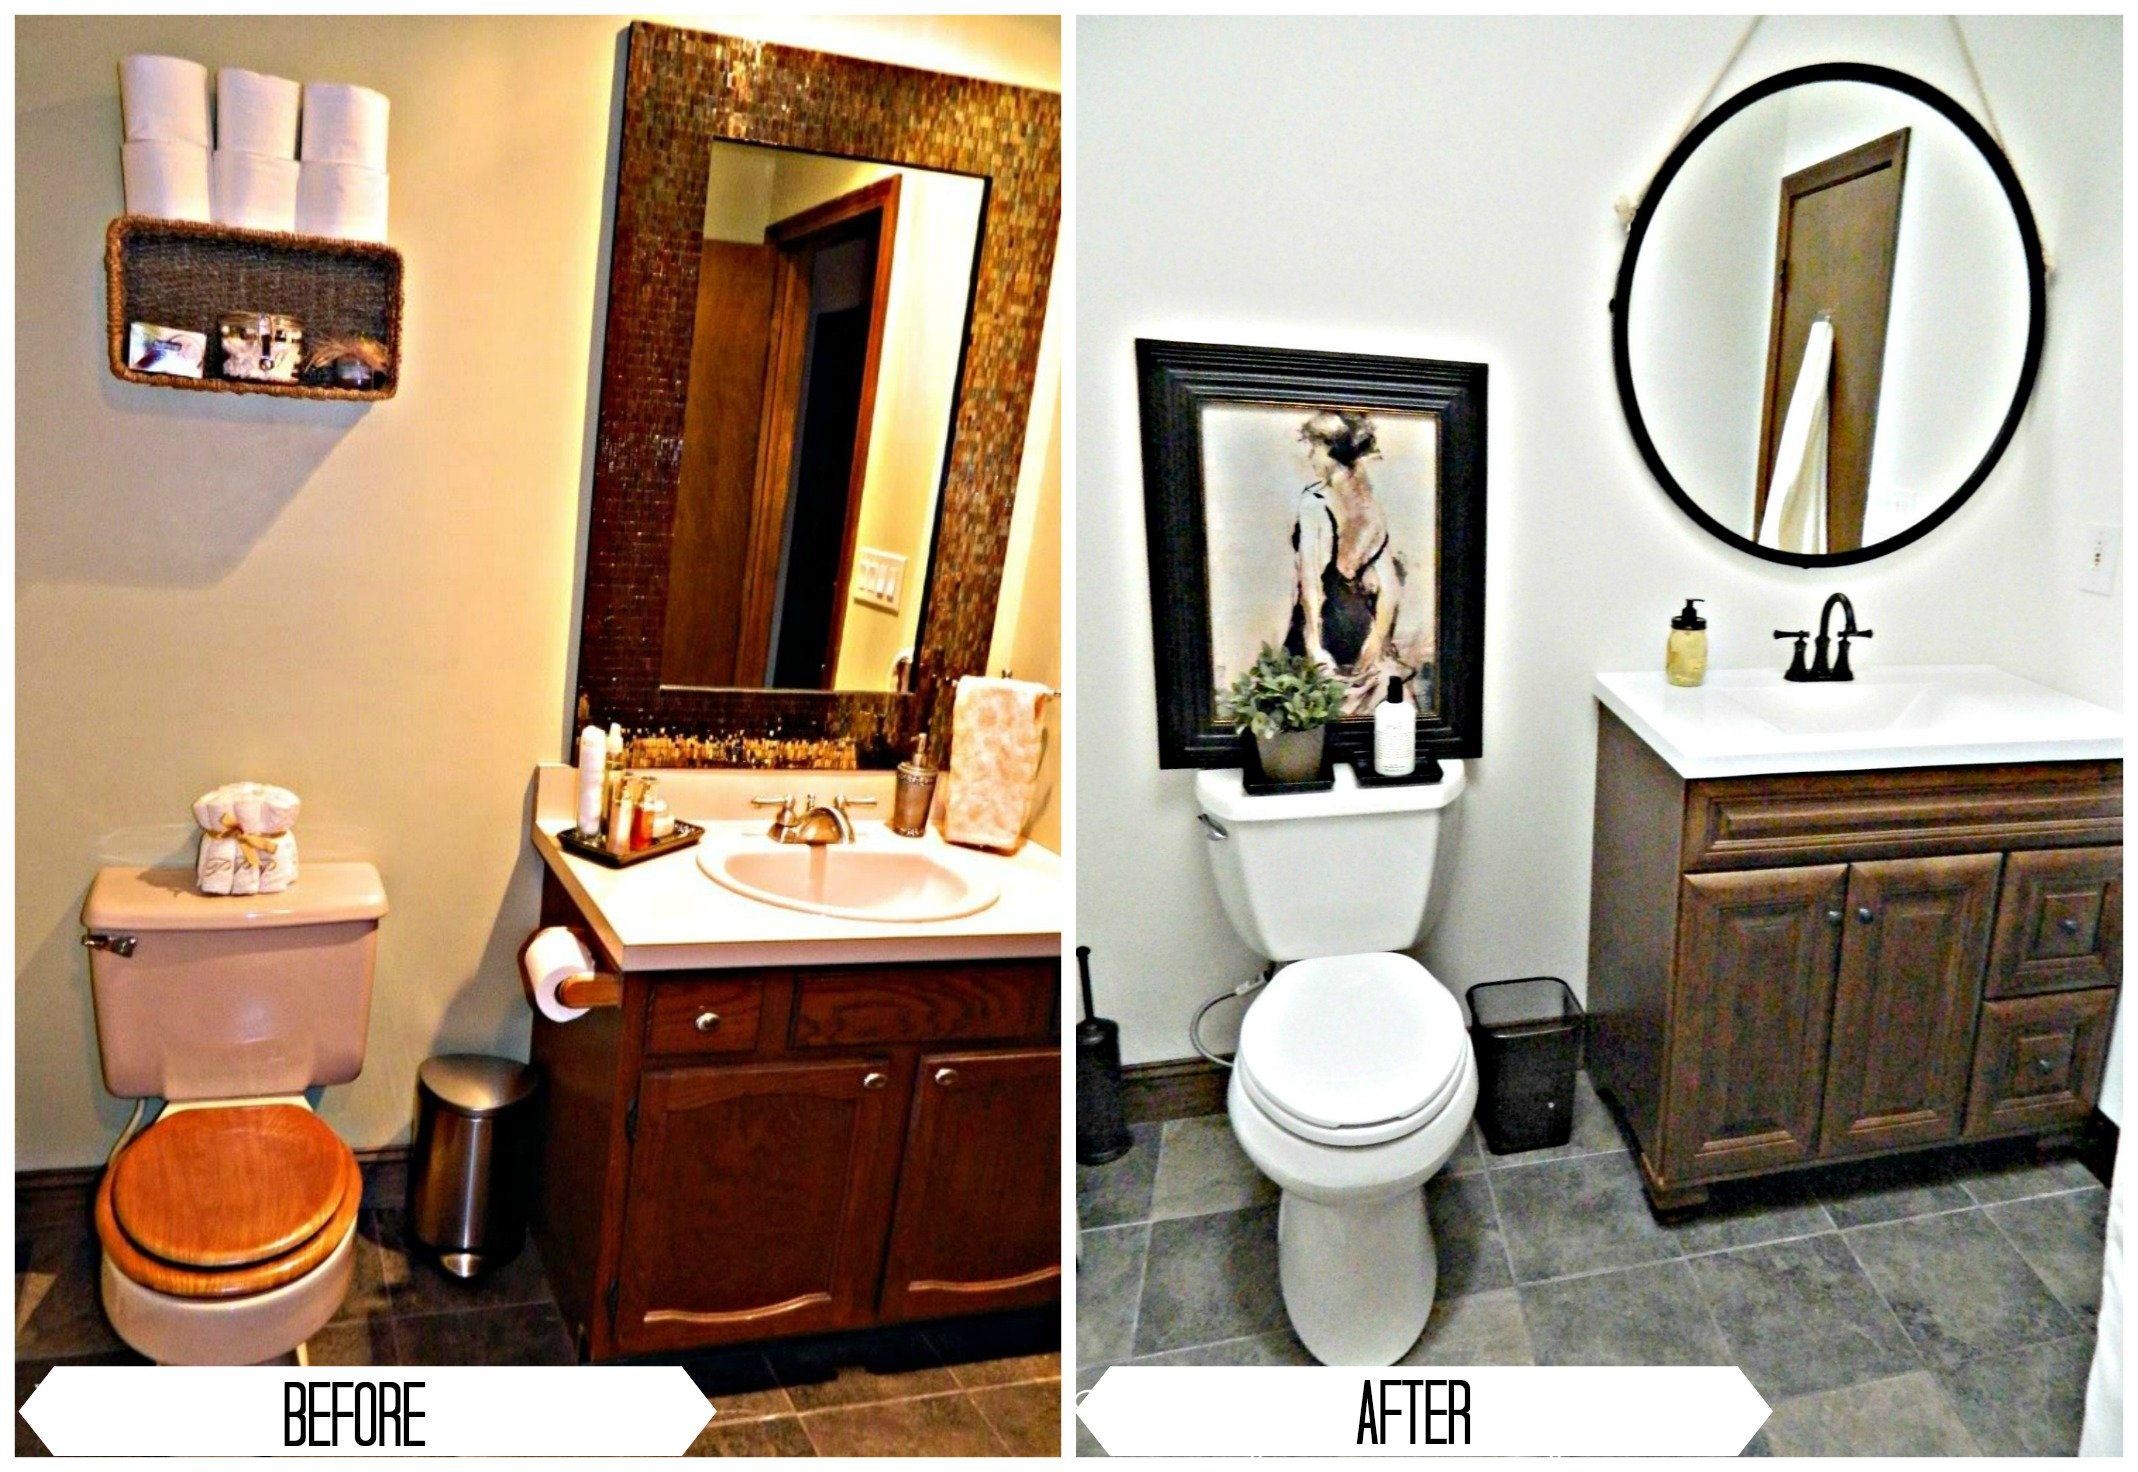 Bathroom Vanities Under $1000 bathroom renovation under $1,000 | finding silver linings